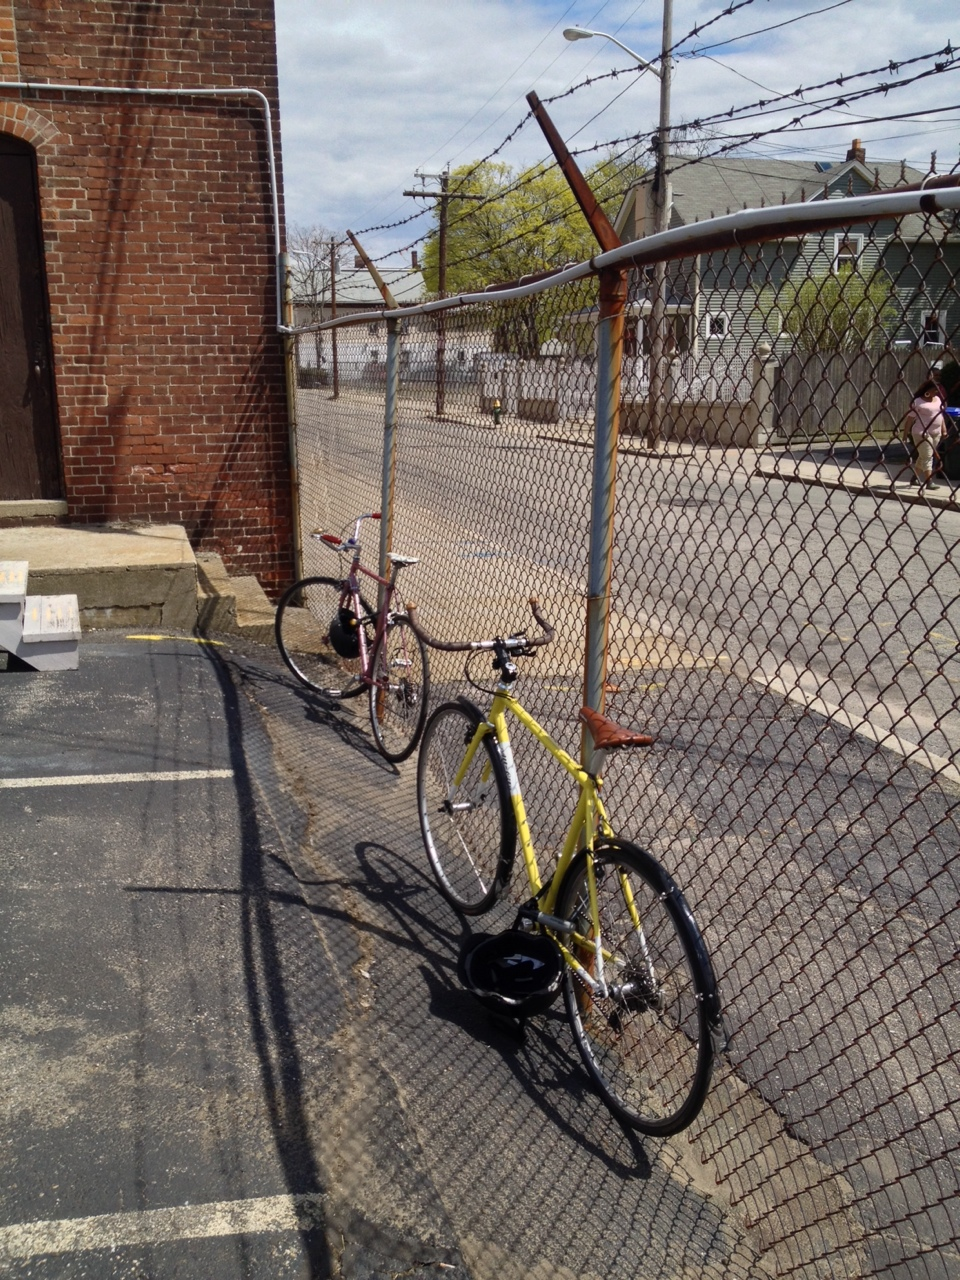 100% of the office biked to the construction site today. Win!